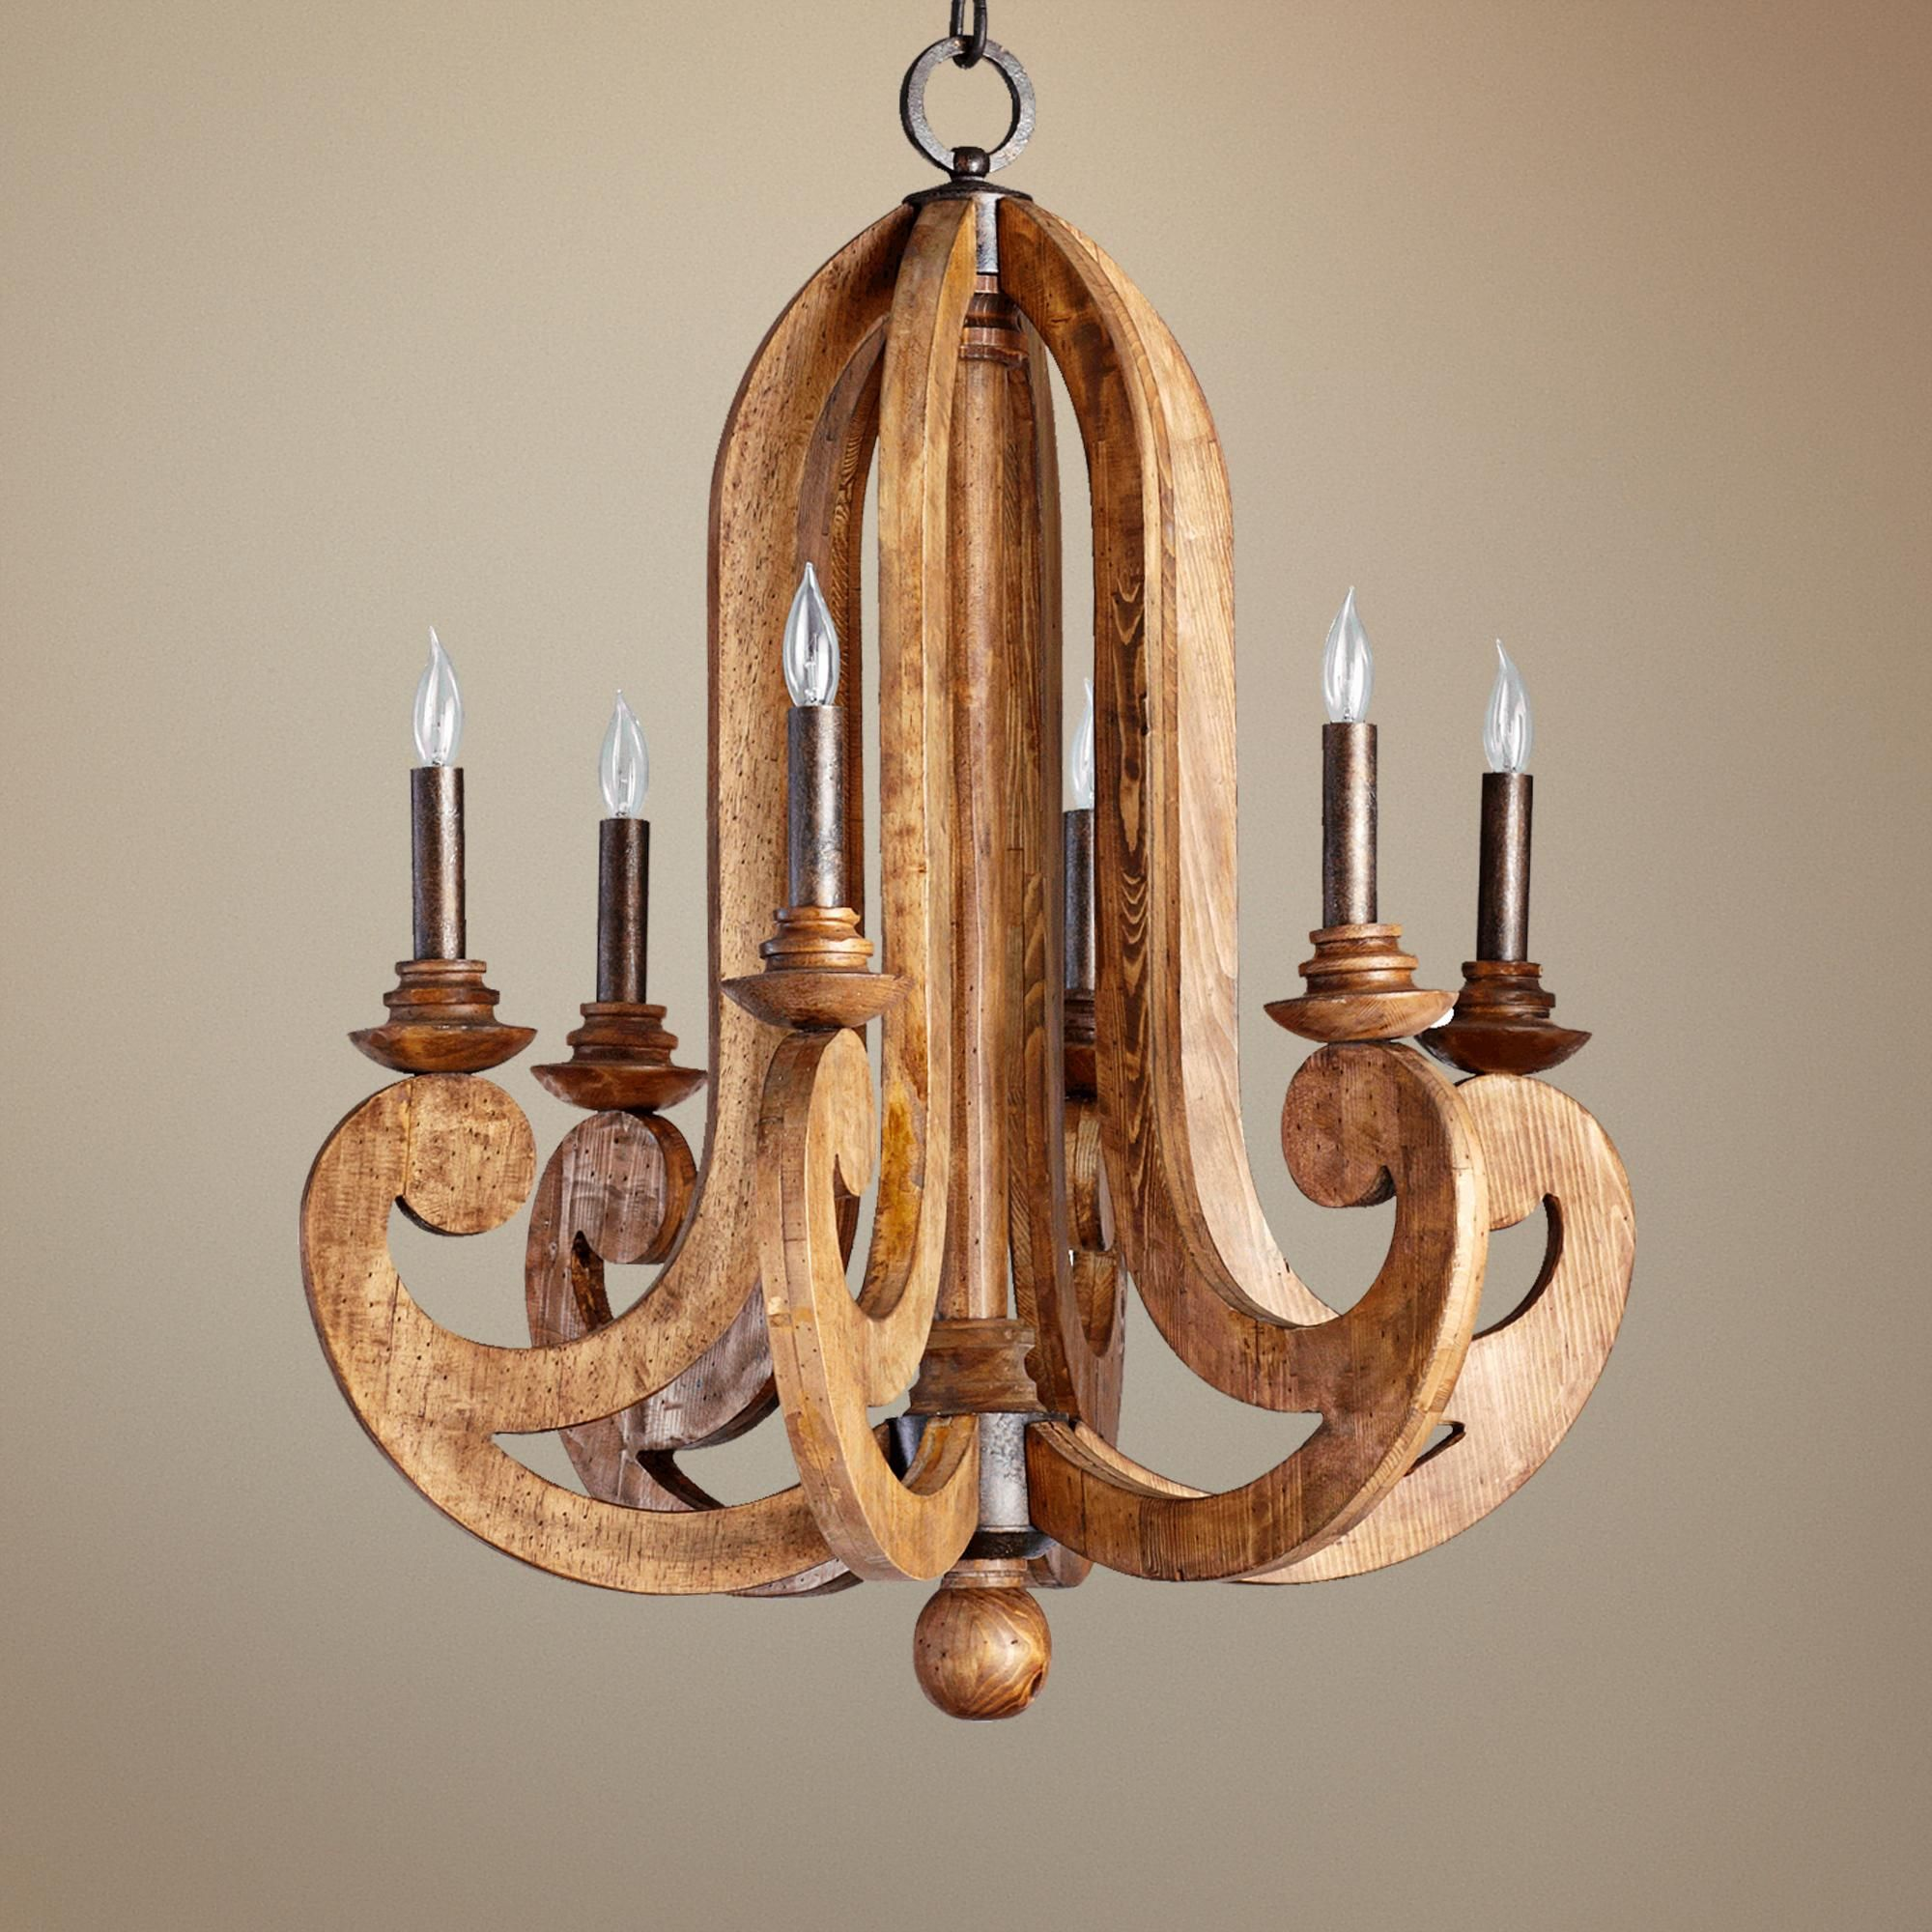 Project kitchen lighting foyers chandeliers and lights amazing wooden chandelier for the foyer quorum ashford 6 light 26 1 aloadofball Image collections